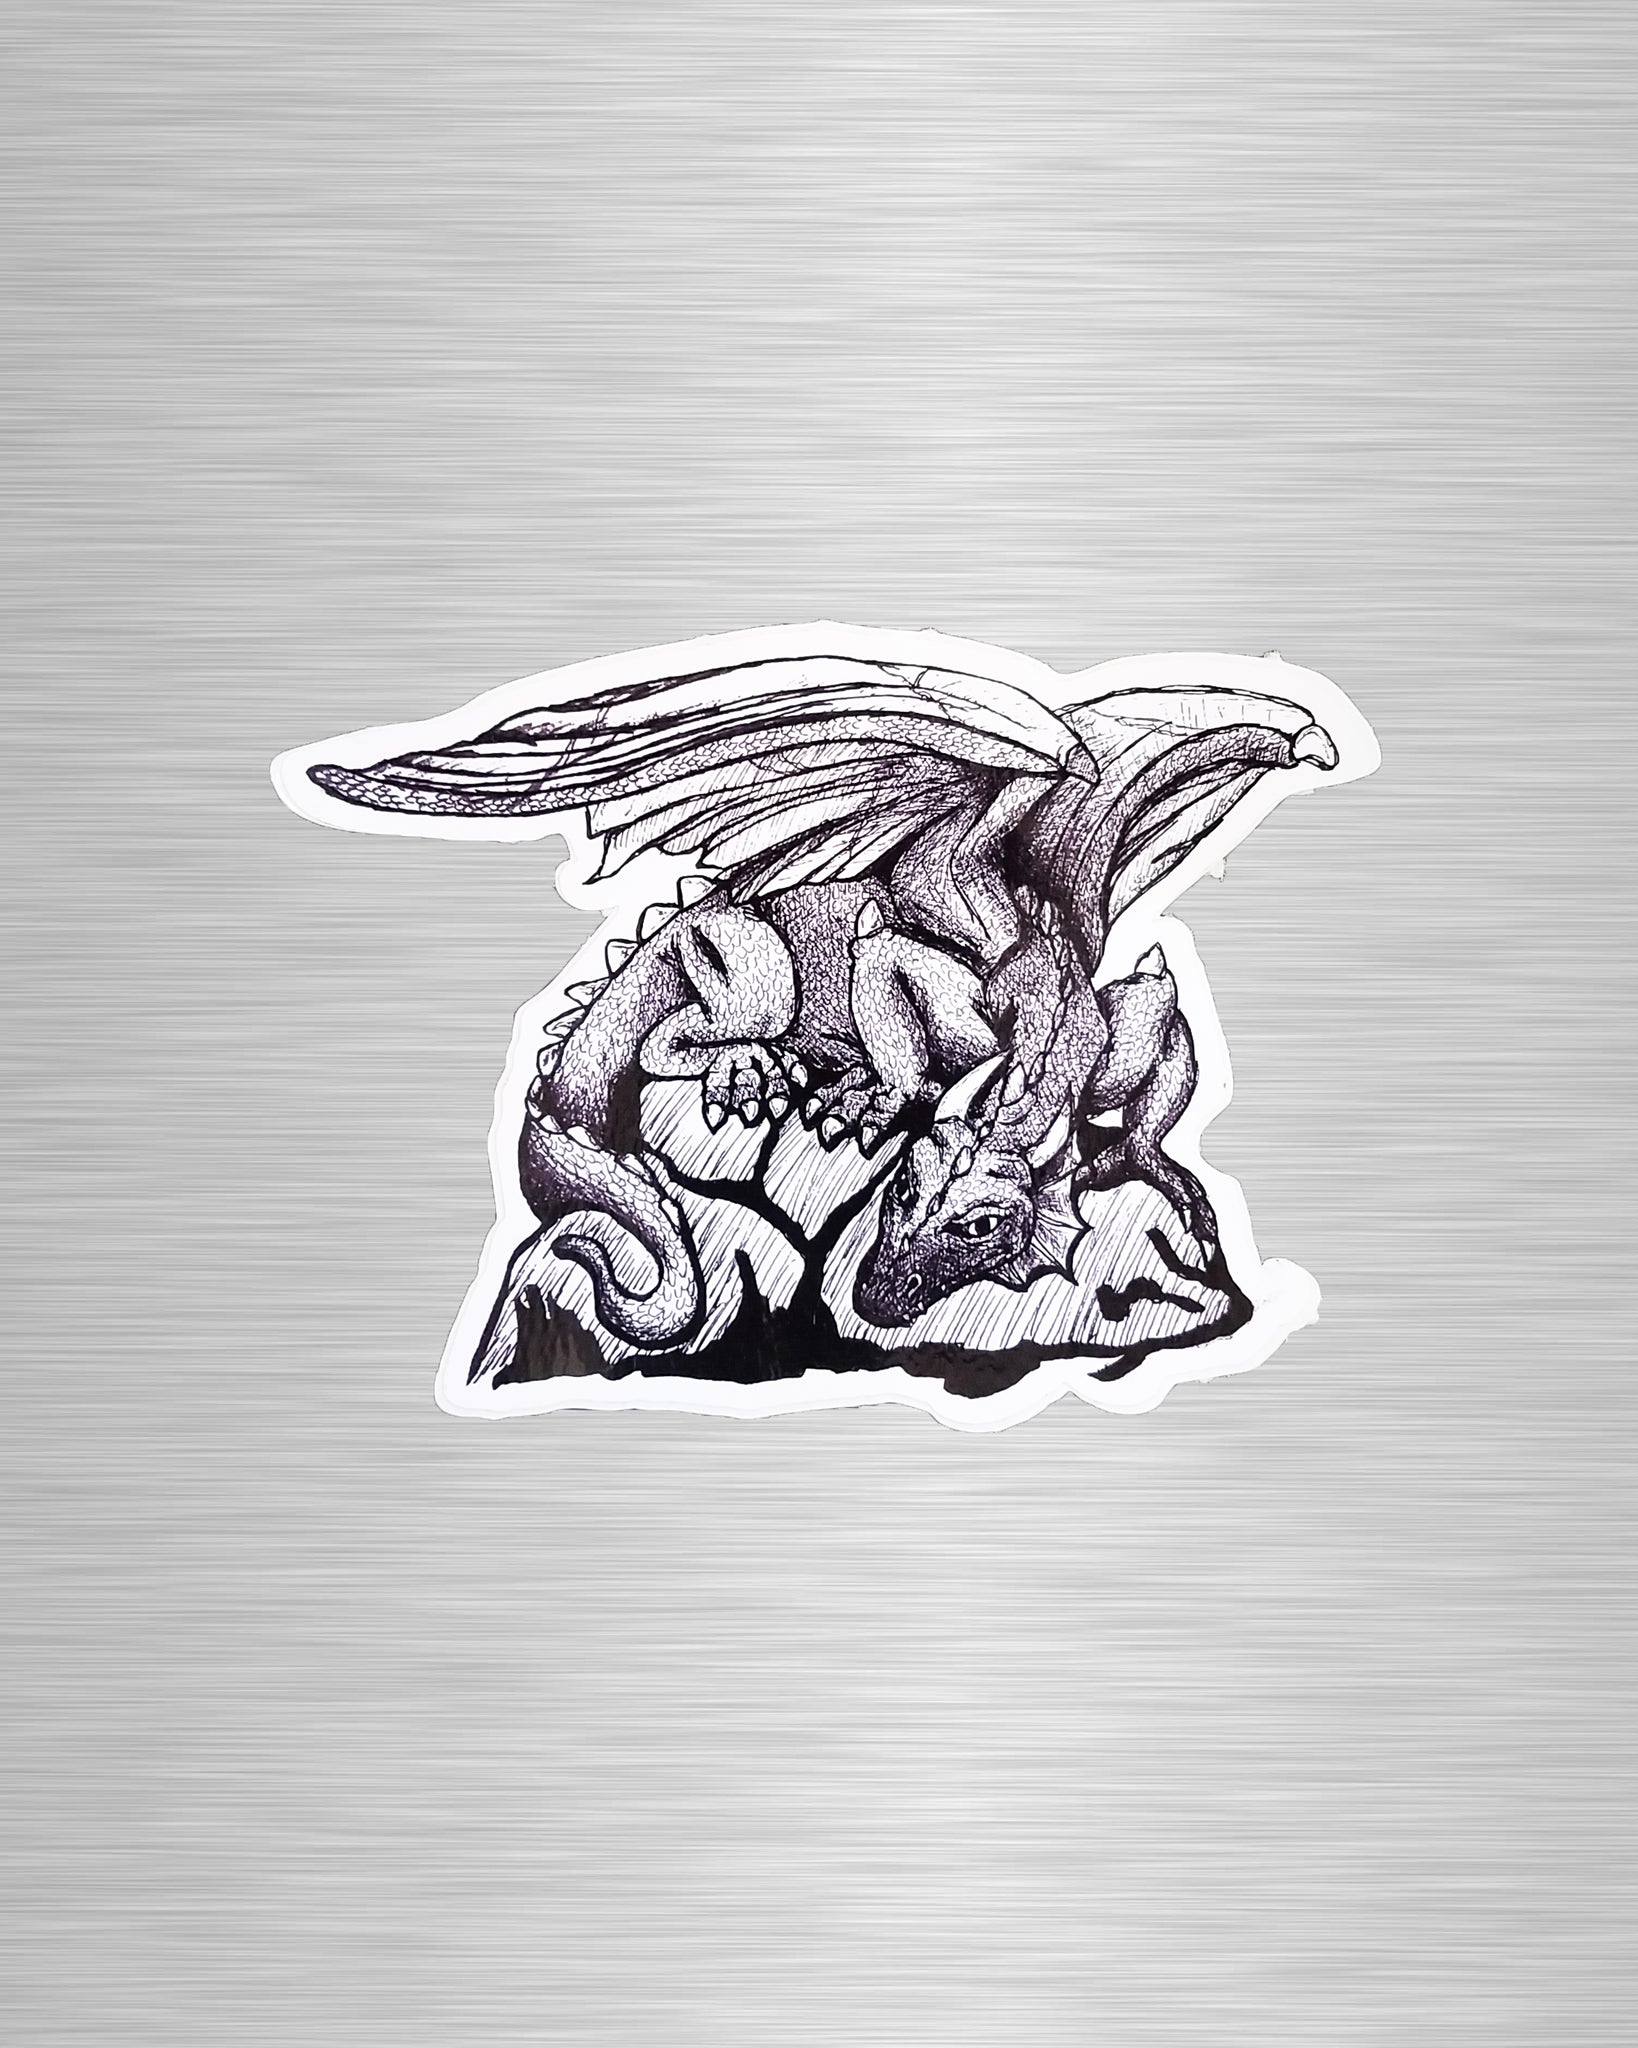 Dragon Vinyl Sticker/Decal